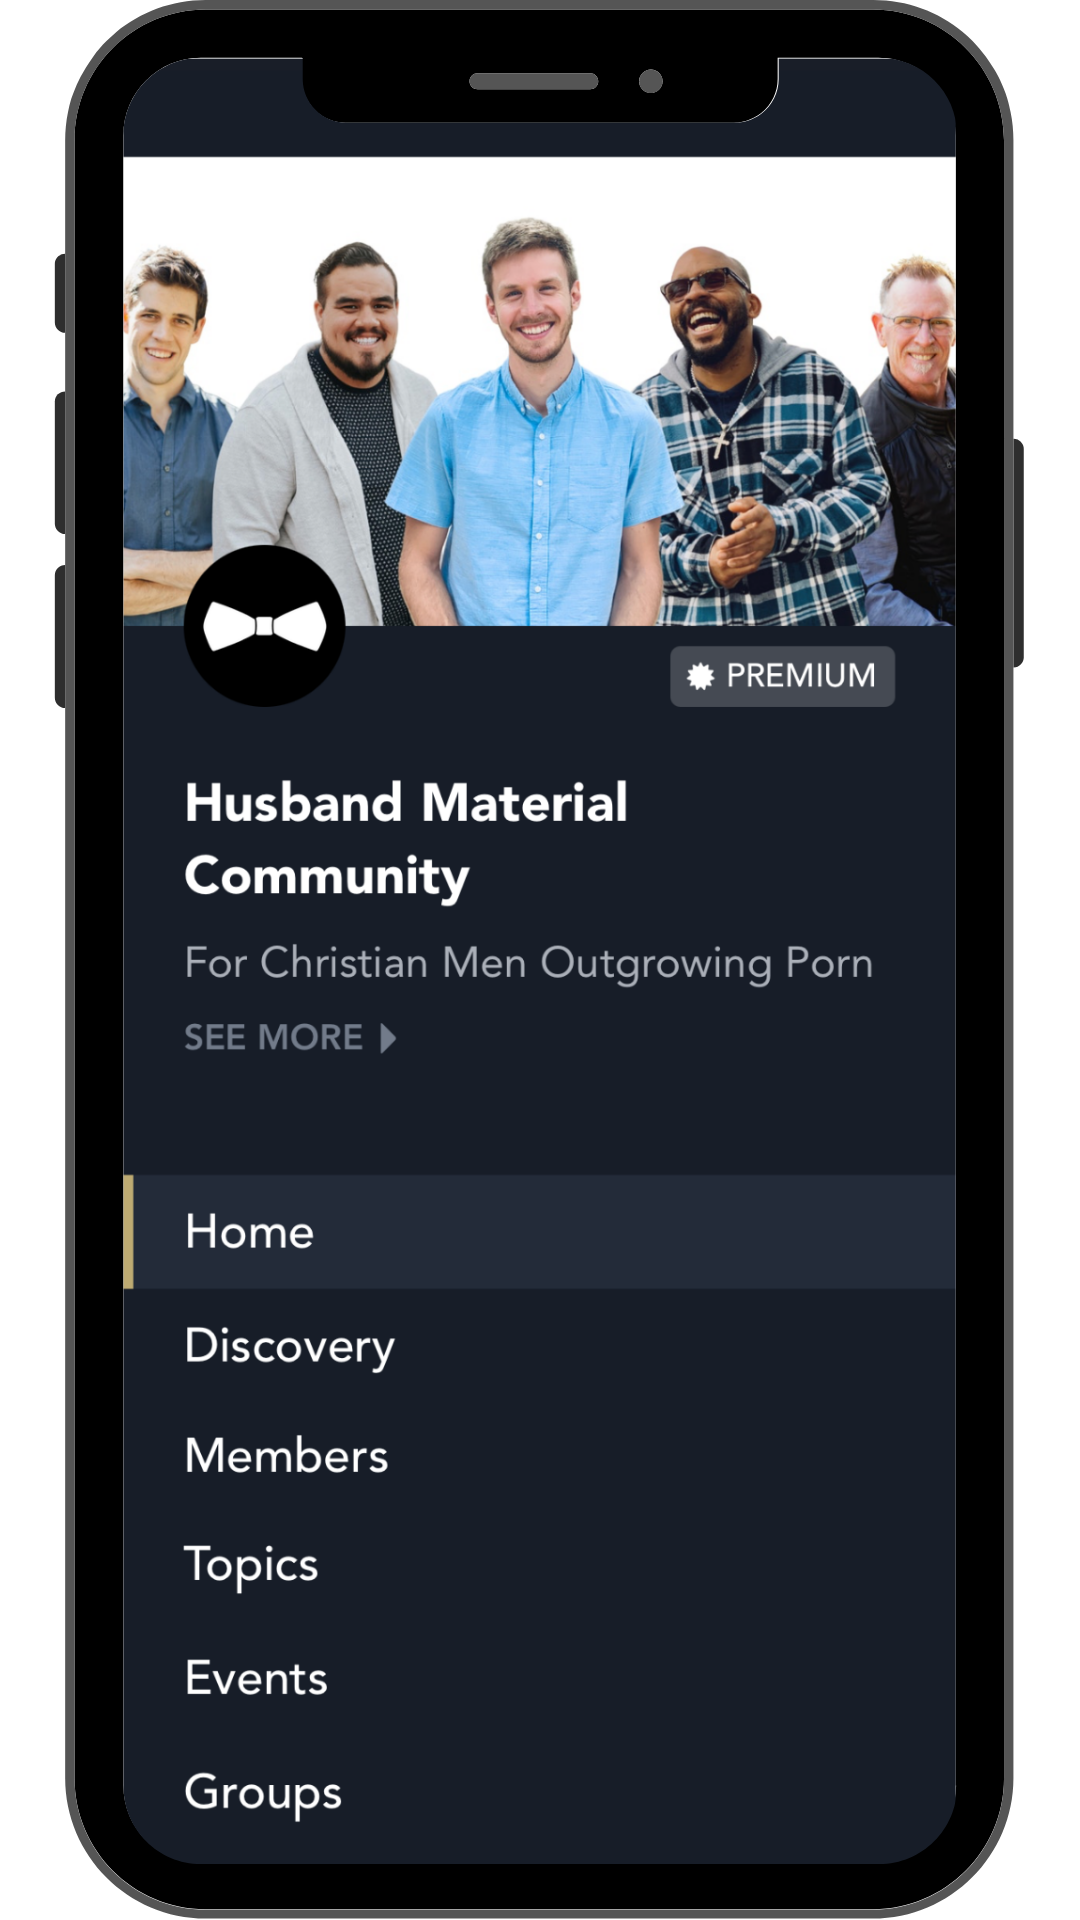 Husband Material Community App